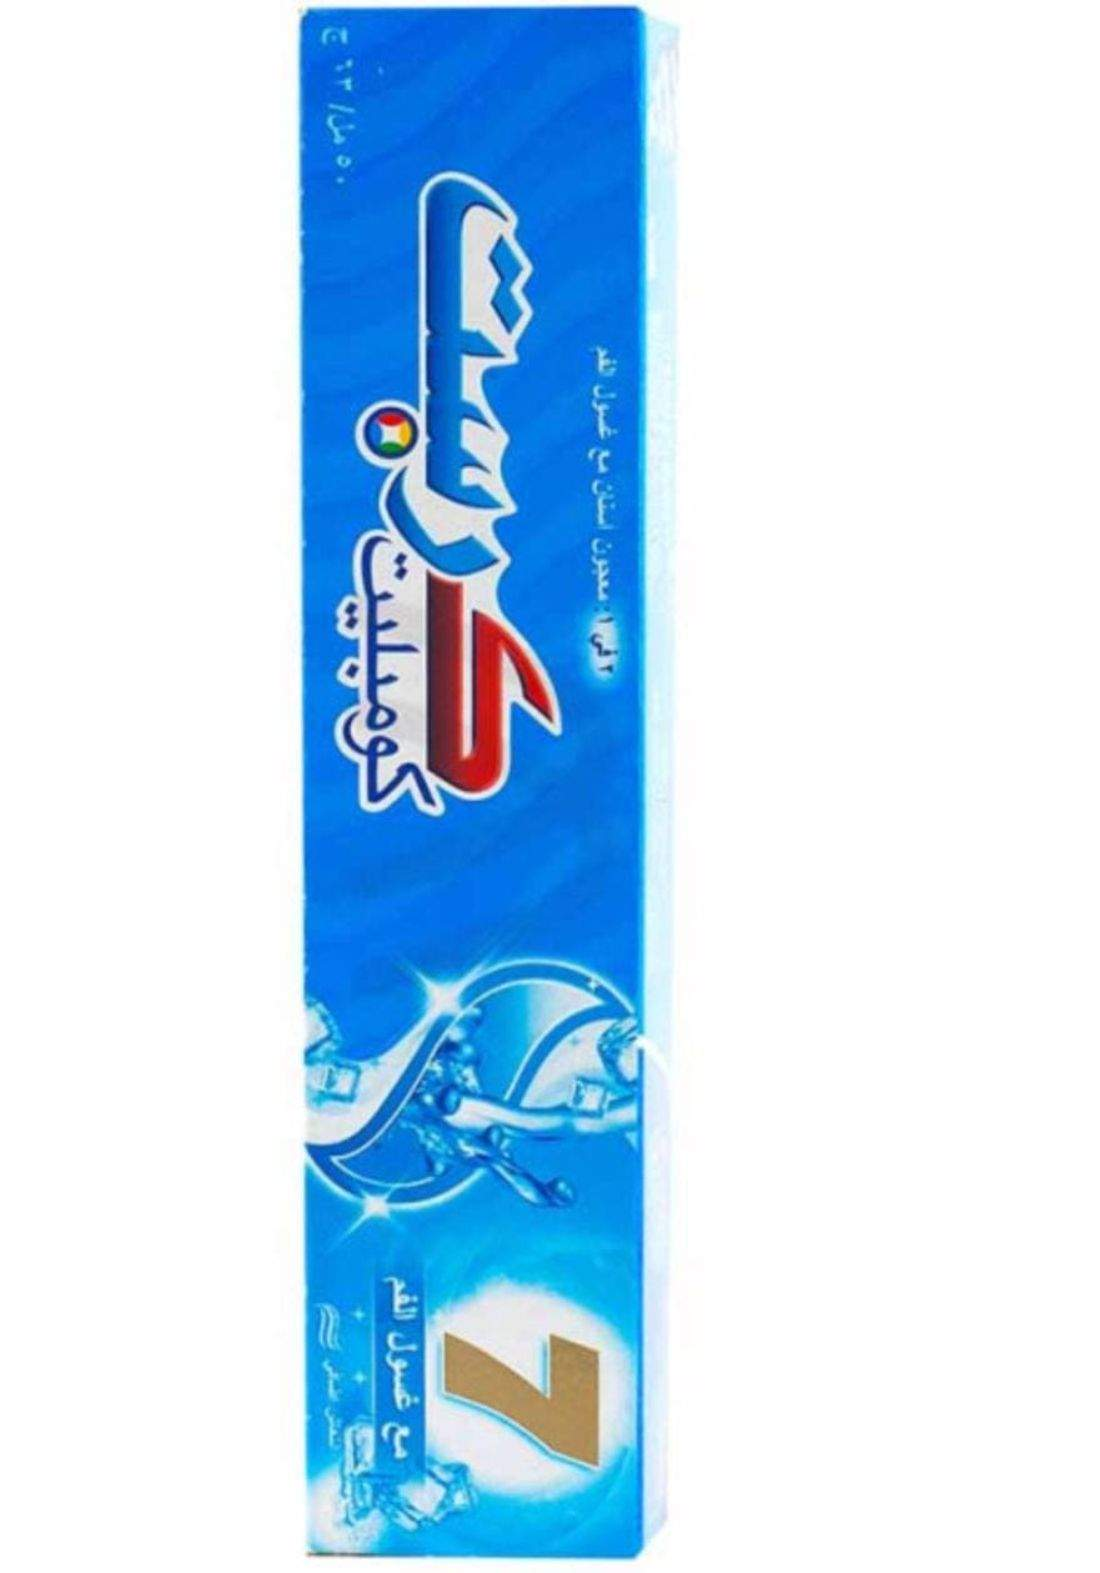 Crest tooth paste 50ml معجون اسنان